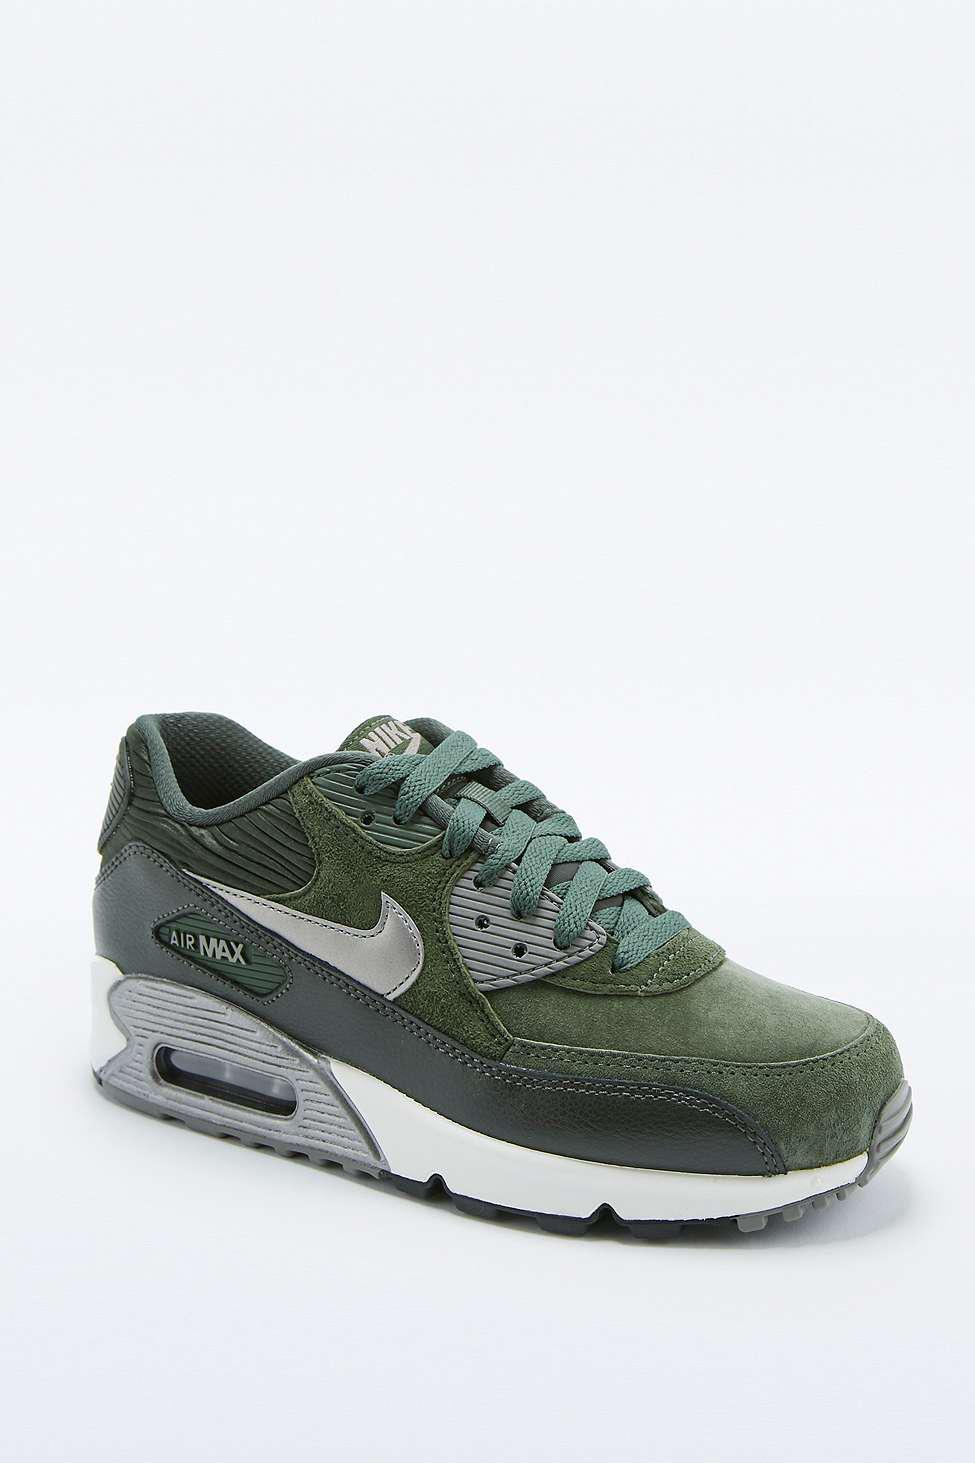 Nike Air Max 90 Green Leather Trainers - from Urban Outfitters 02621e2aa80d